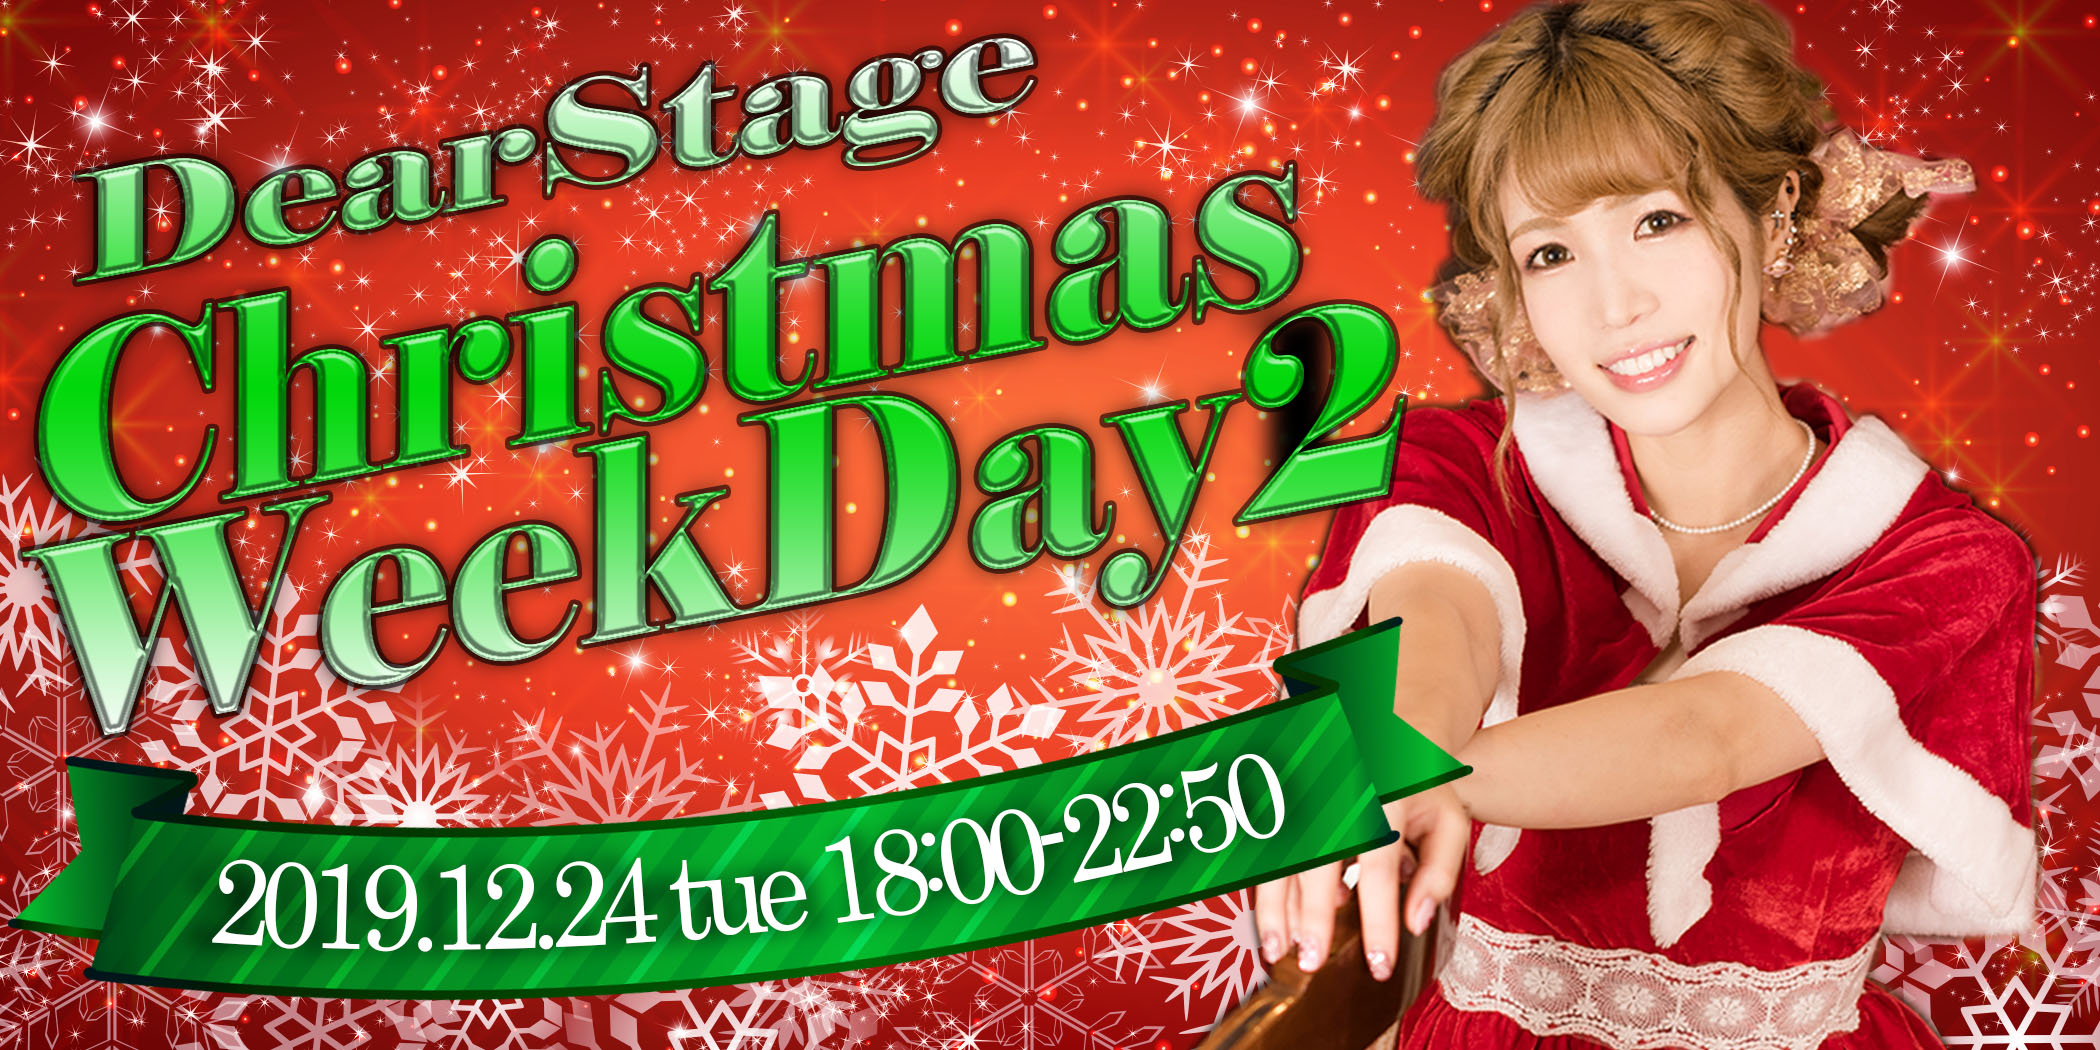 DearStage Christmas Week Day2